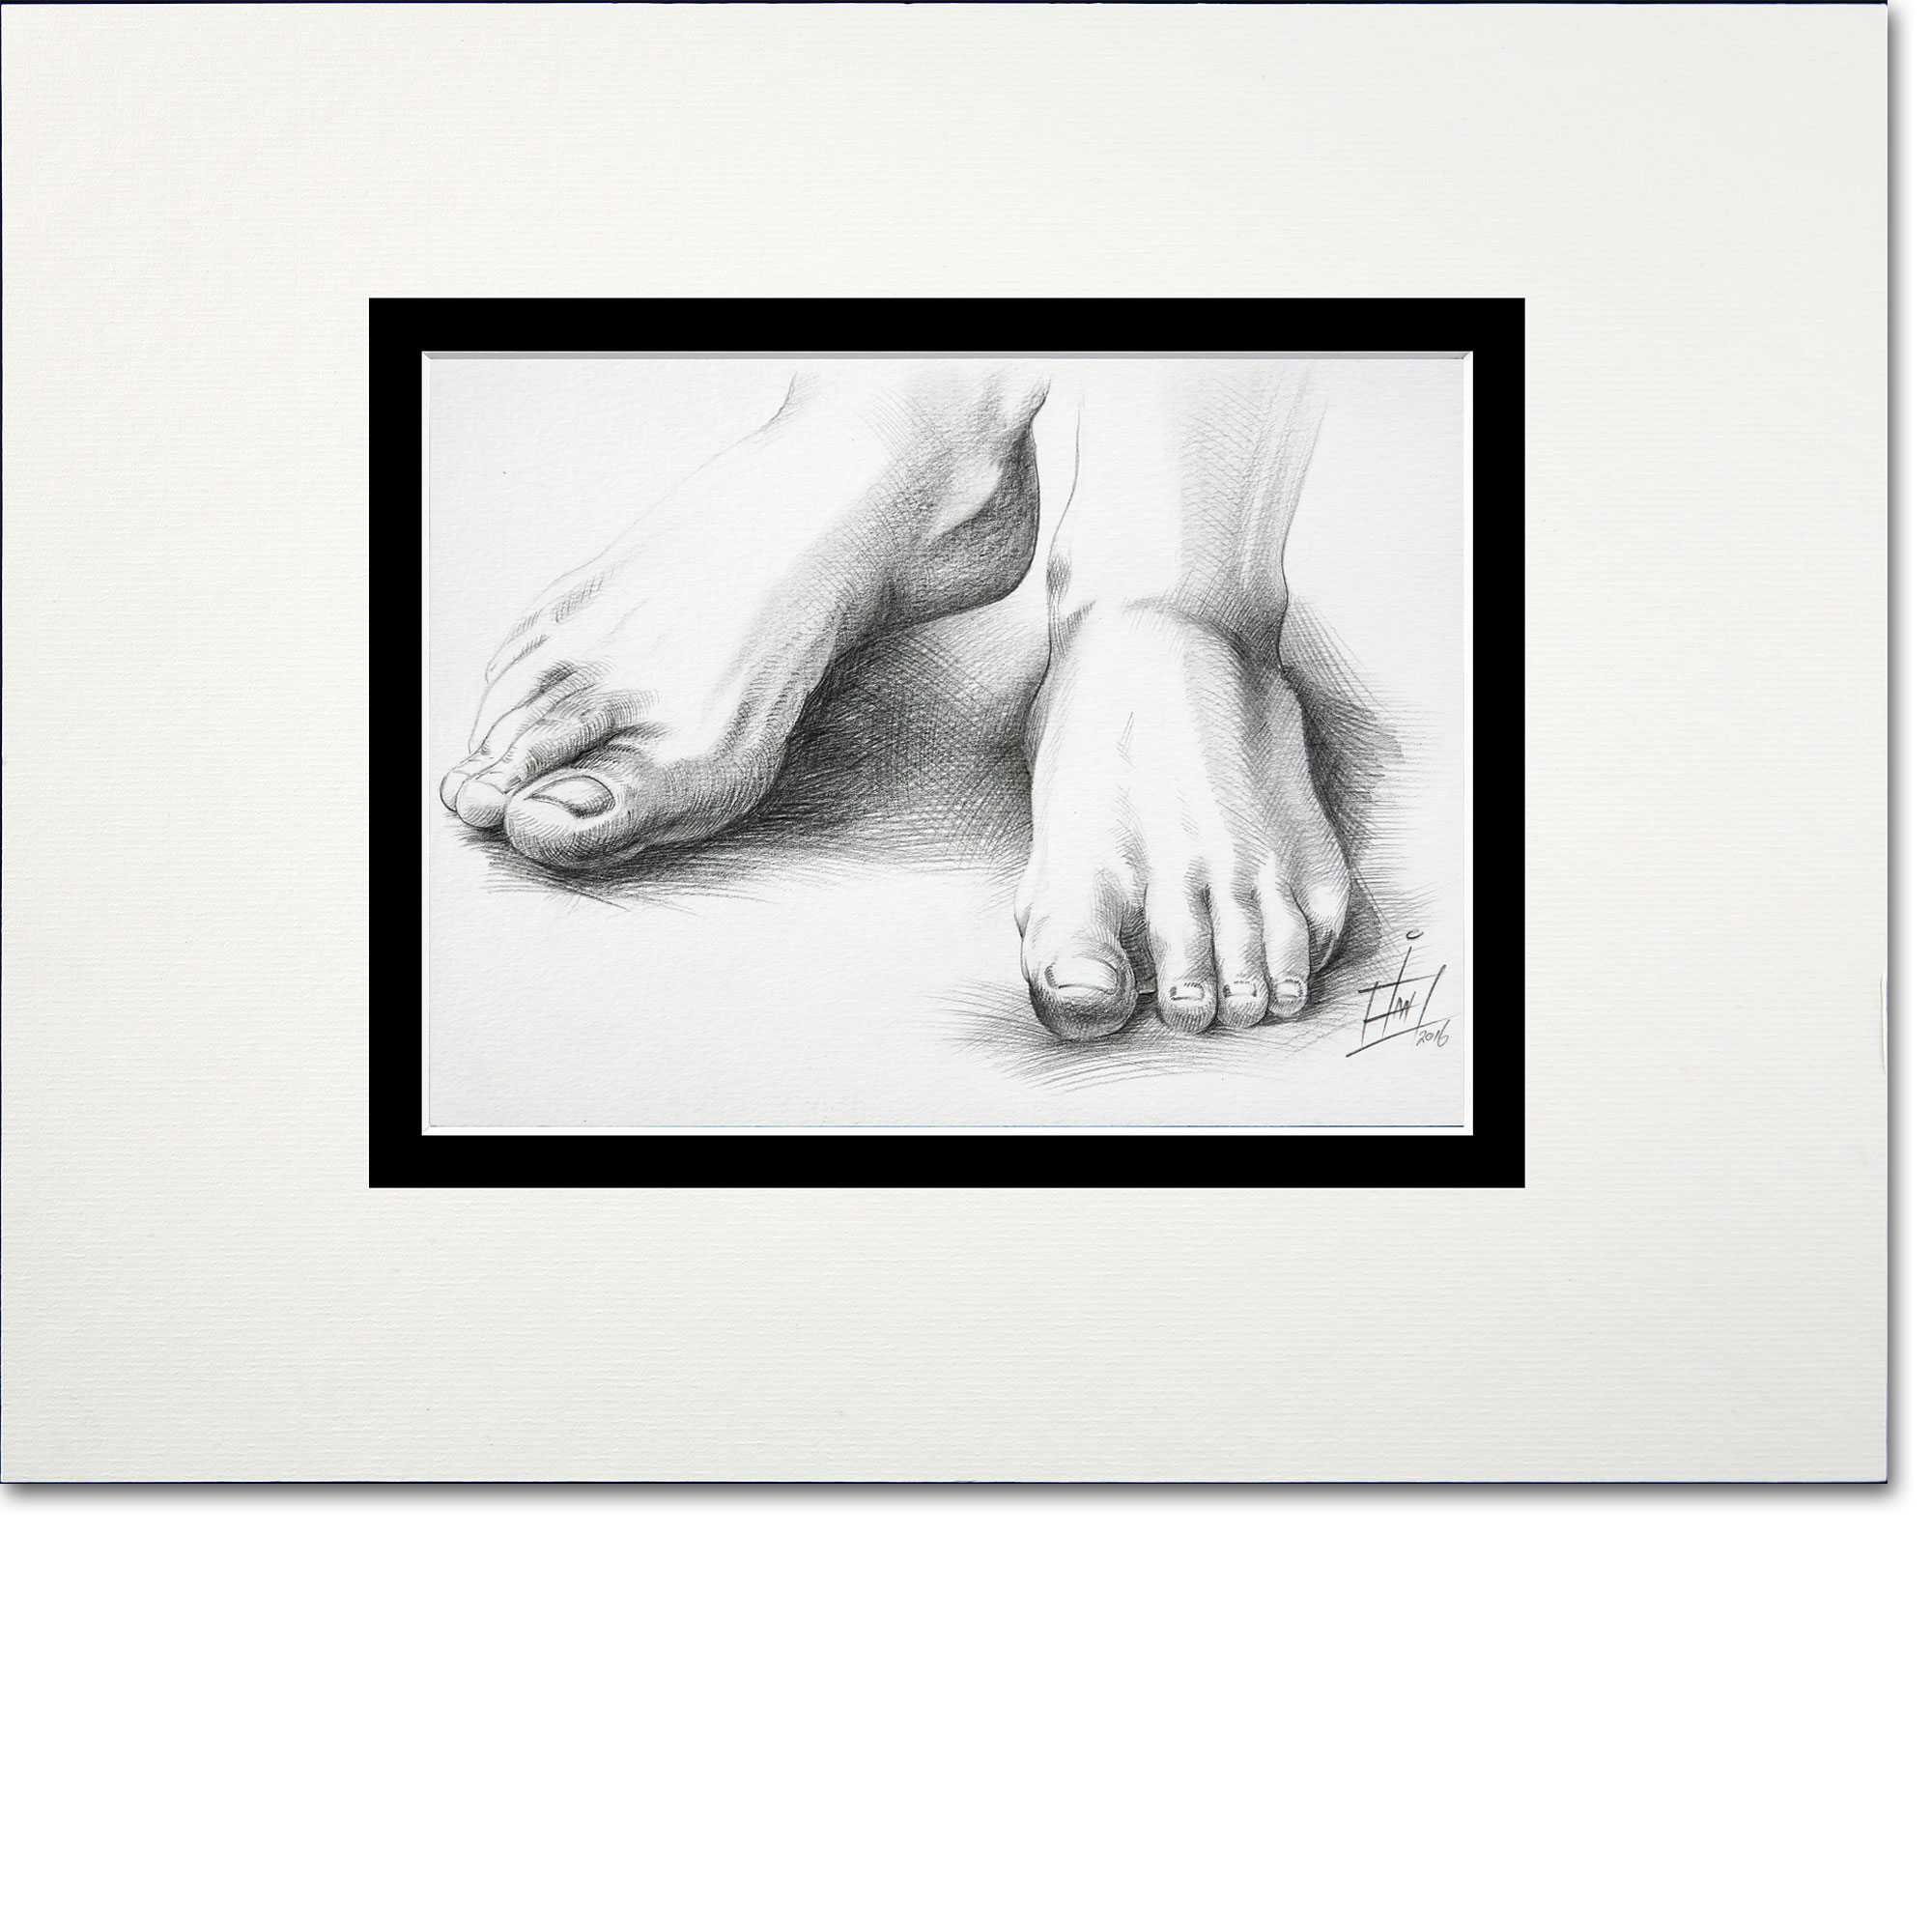 A pencil illustration of a person's feet. What News Do Your Feet Carry?